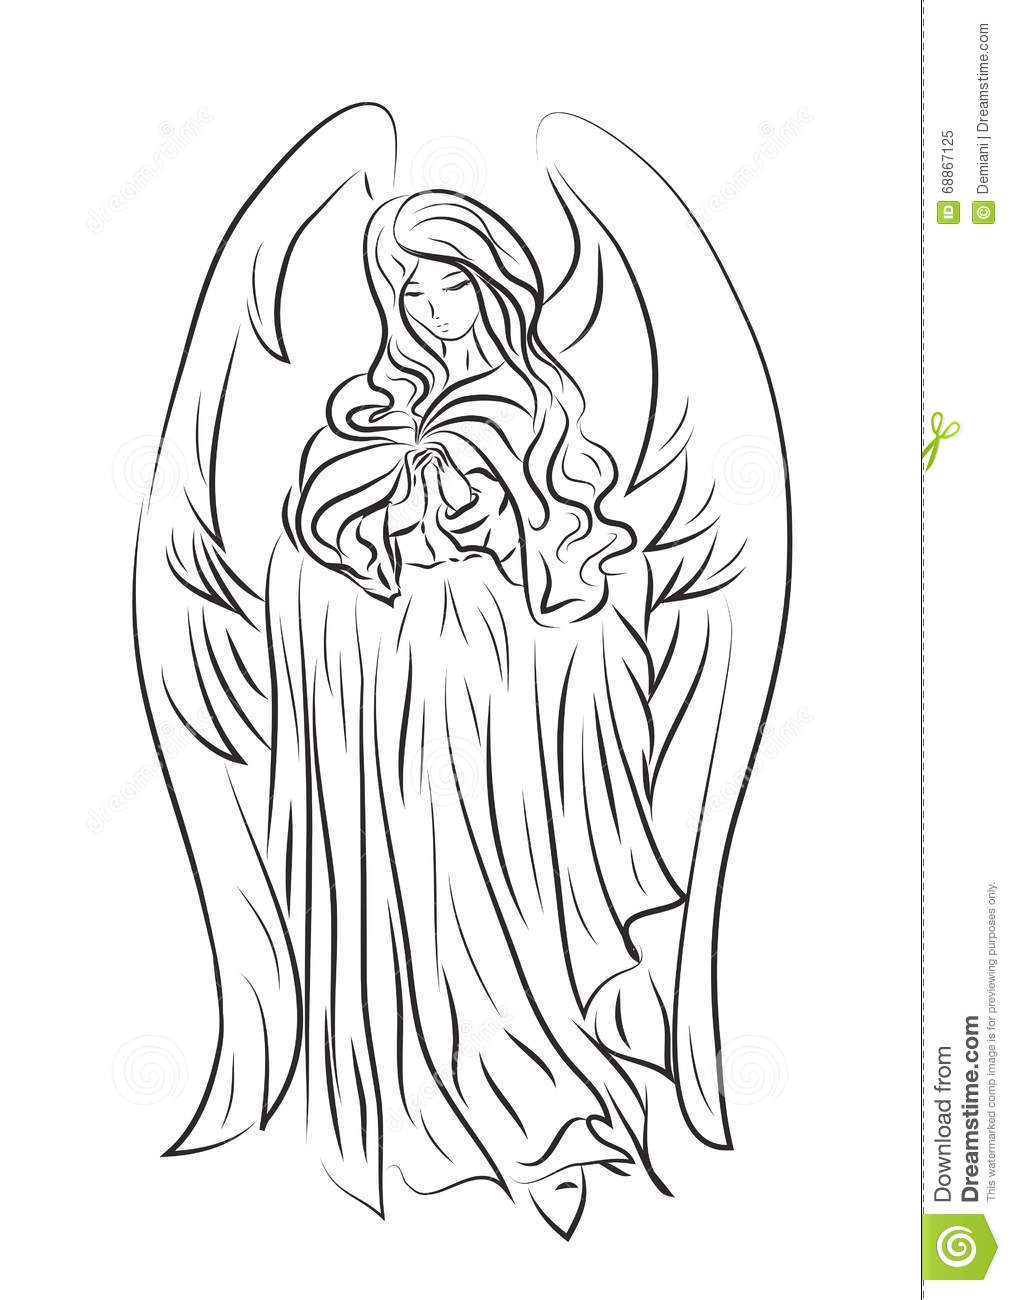 Picture Of A Bpicture Of A Beautiful Angel Girl In A Cartoon Sty Stock Vector Image 68867125